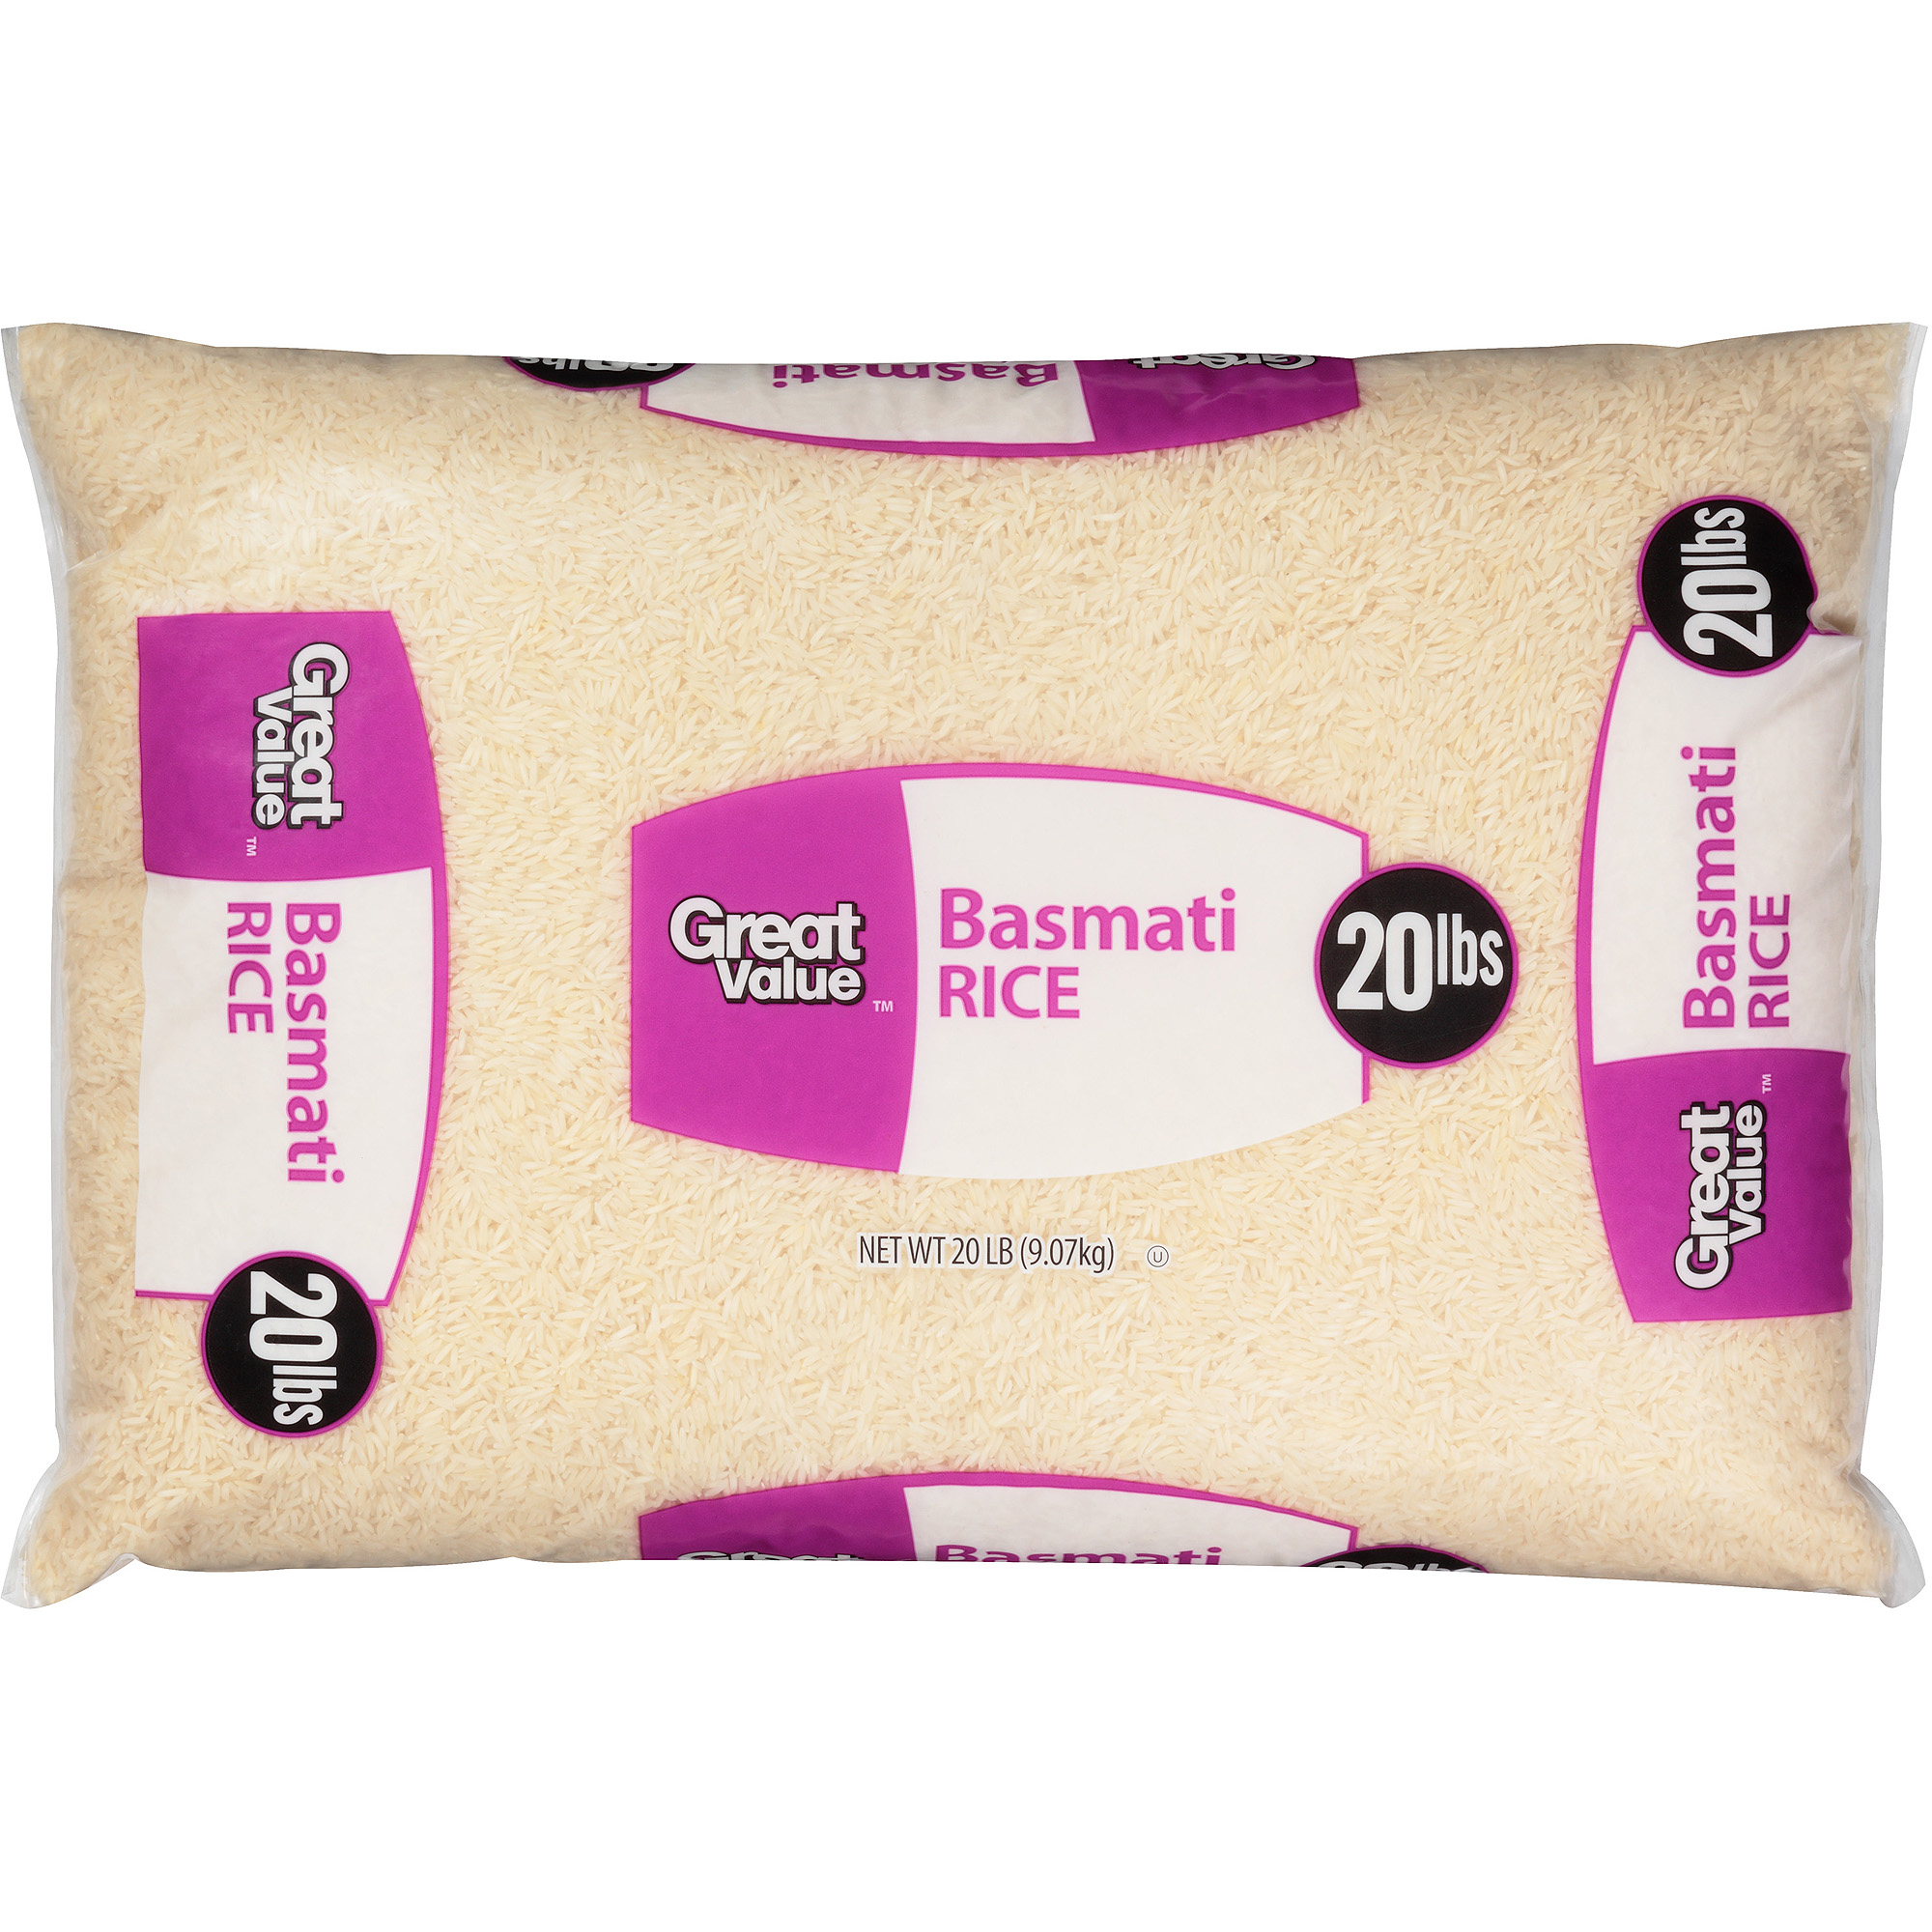 Great Value Basmati Rice, 20 lbs